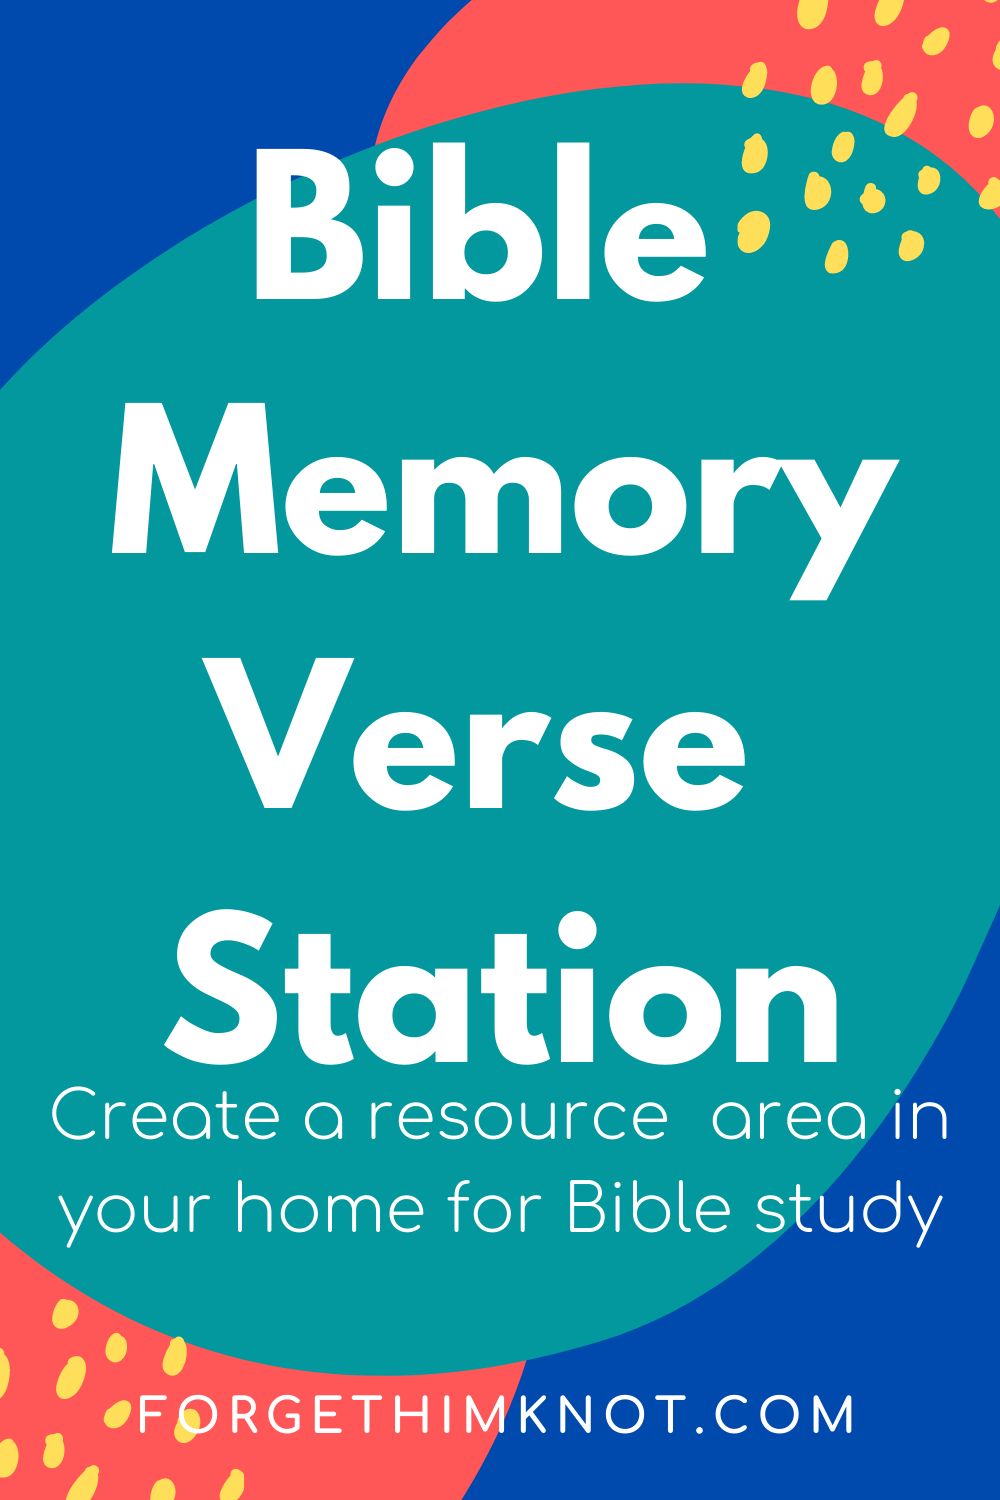 Bible Memory Verse Station for Kids/forgethimknot.com